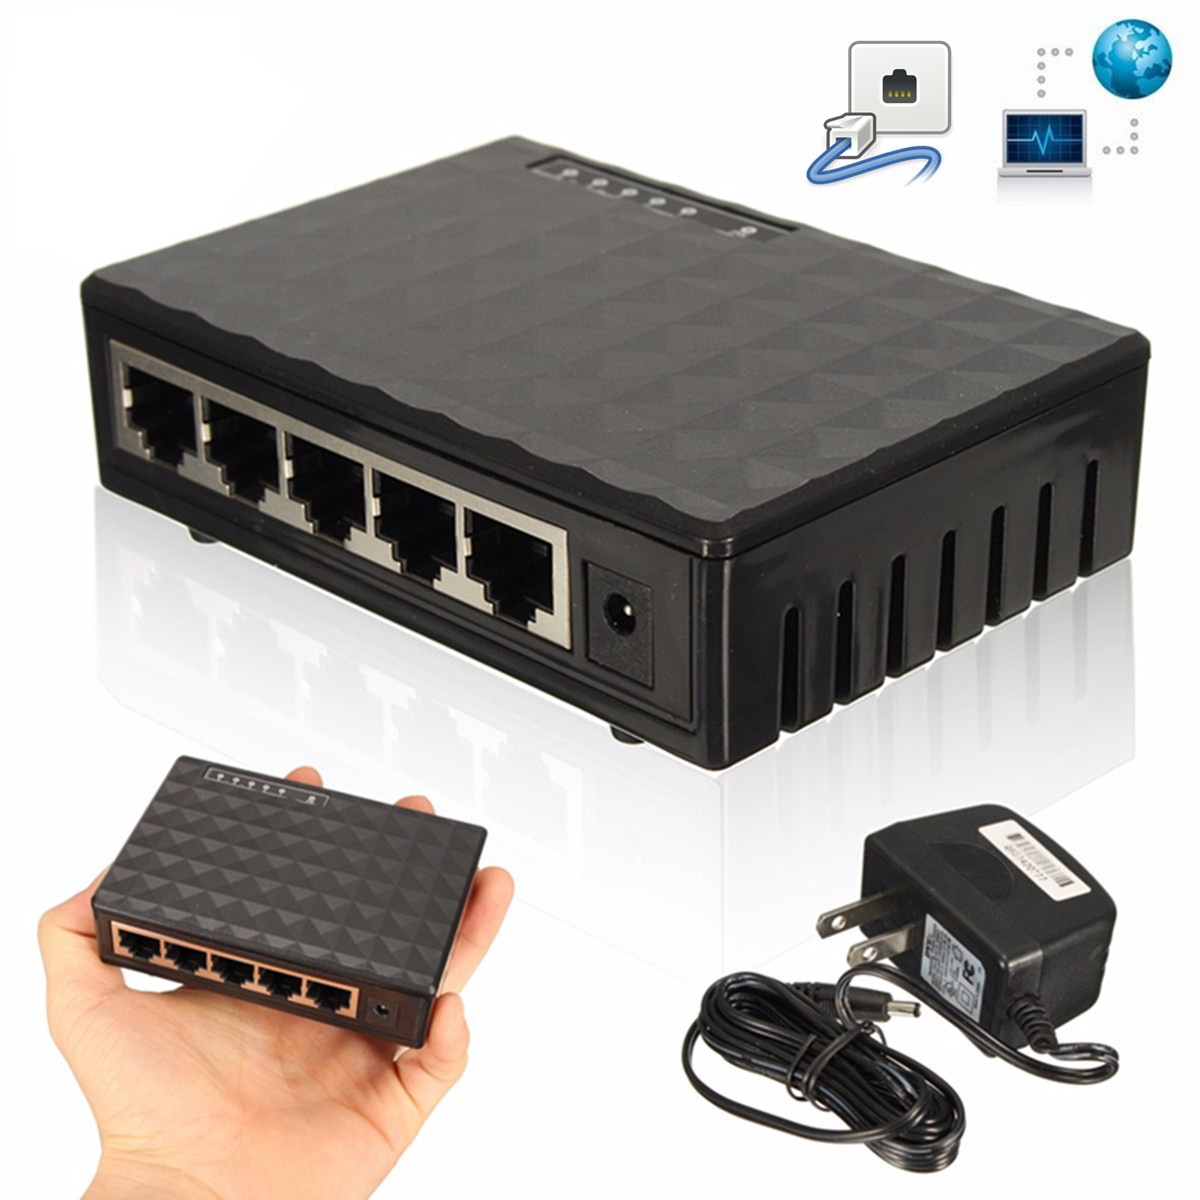 5V 5 Port Switch RJ45 10/100/1000Mbps Gigabit Ethernet Network Lan Switch Splitter LED Hub Support auto MDI/MDIX ...